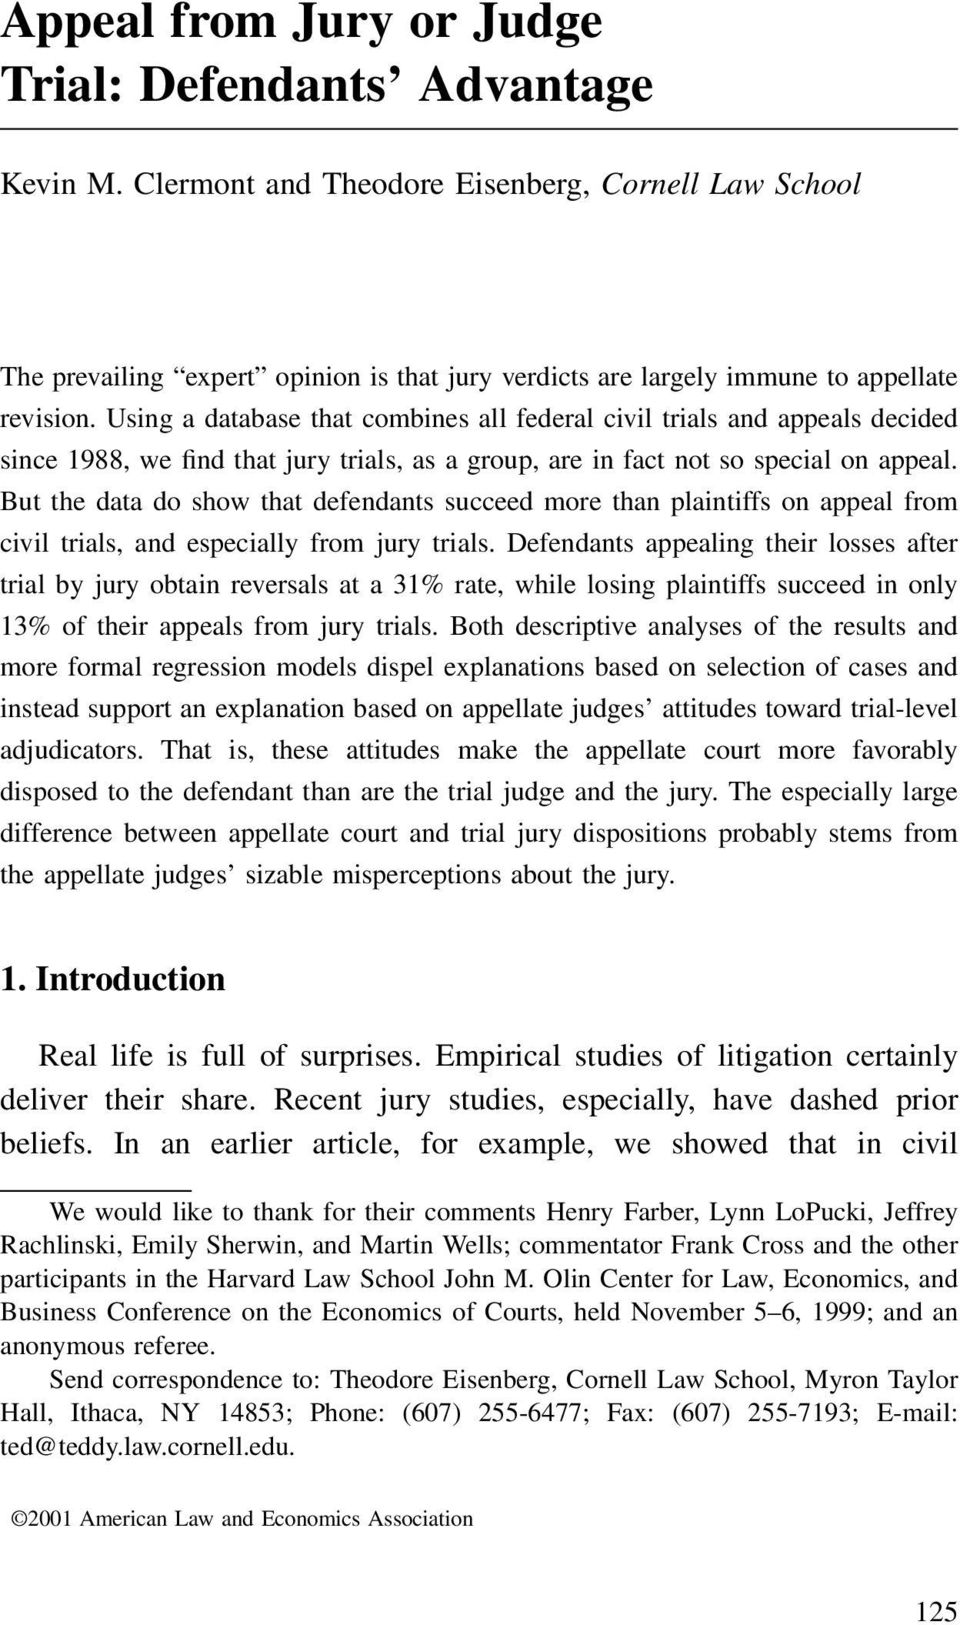 Using a database that combines all federal civil trials and appeals decided since 1988, we find that jury trials, as a group, are in fact not so special on appeal.